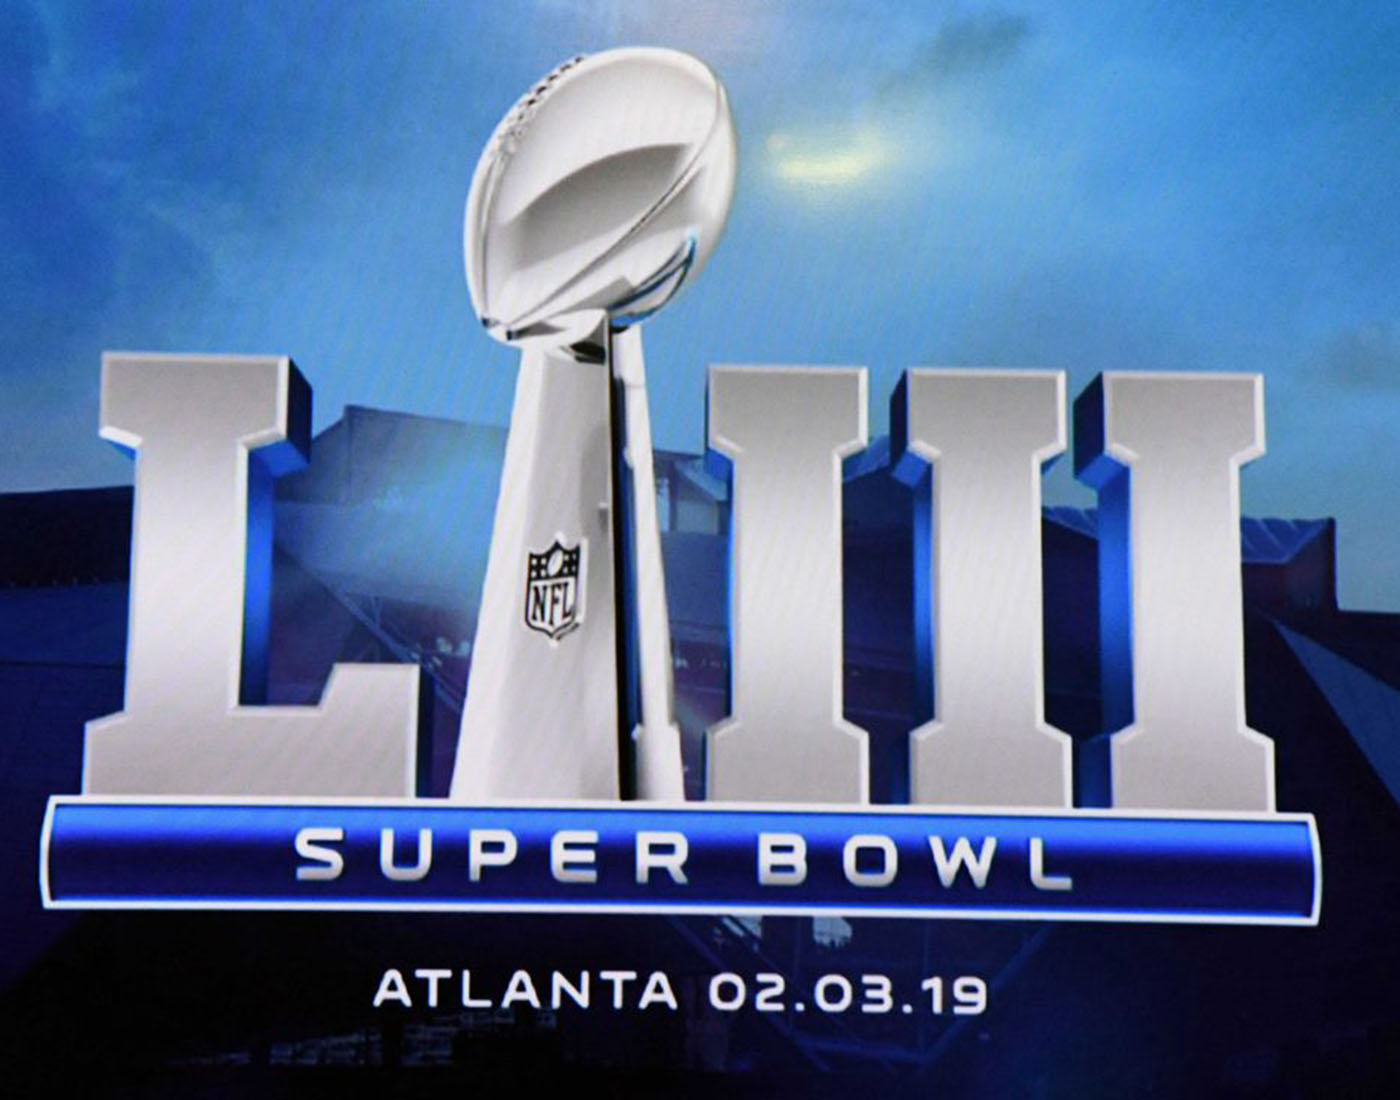 Official Logo of the Super Bowl